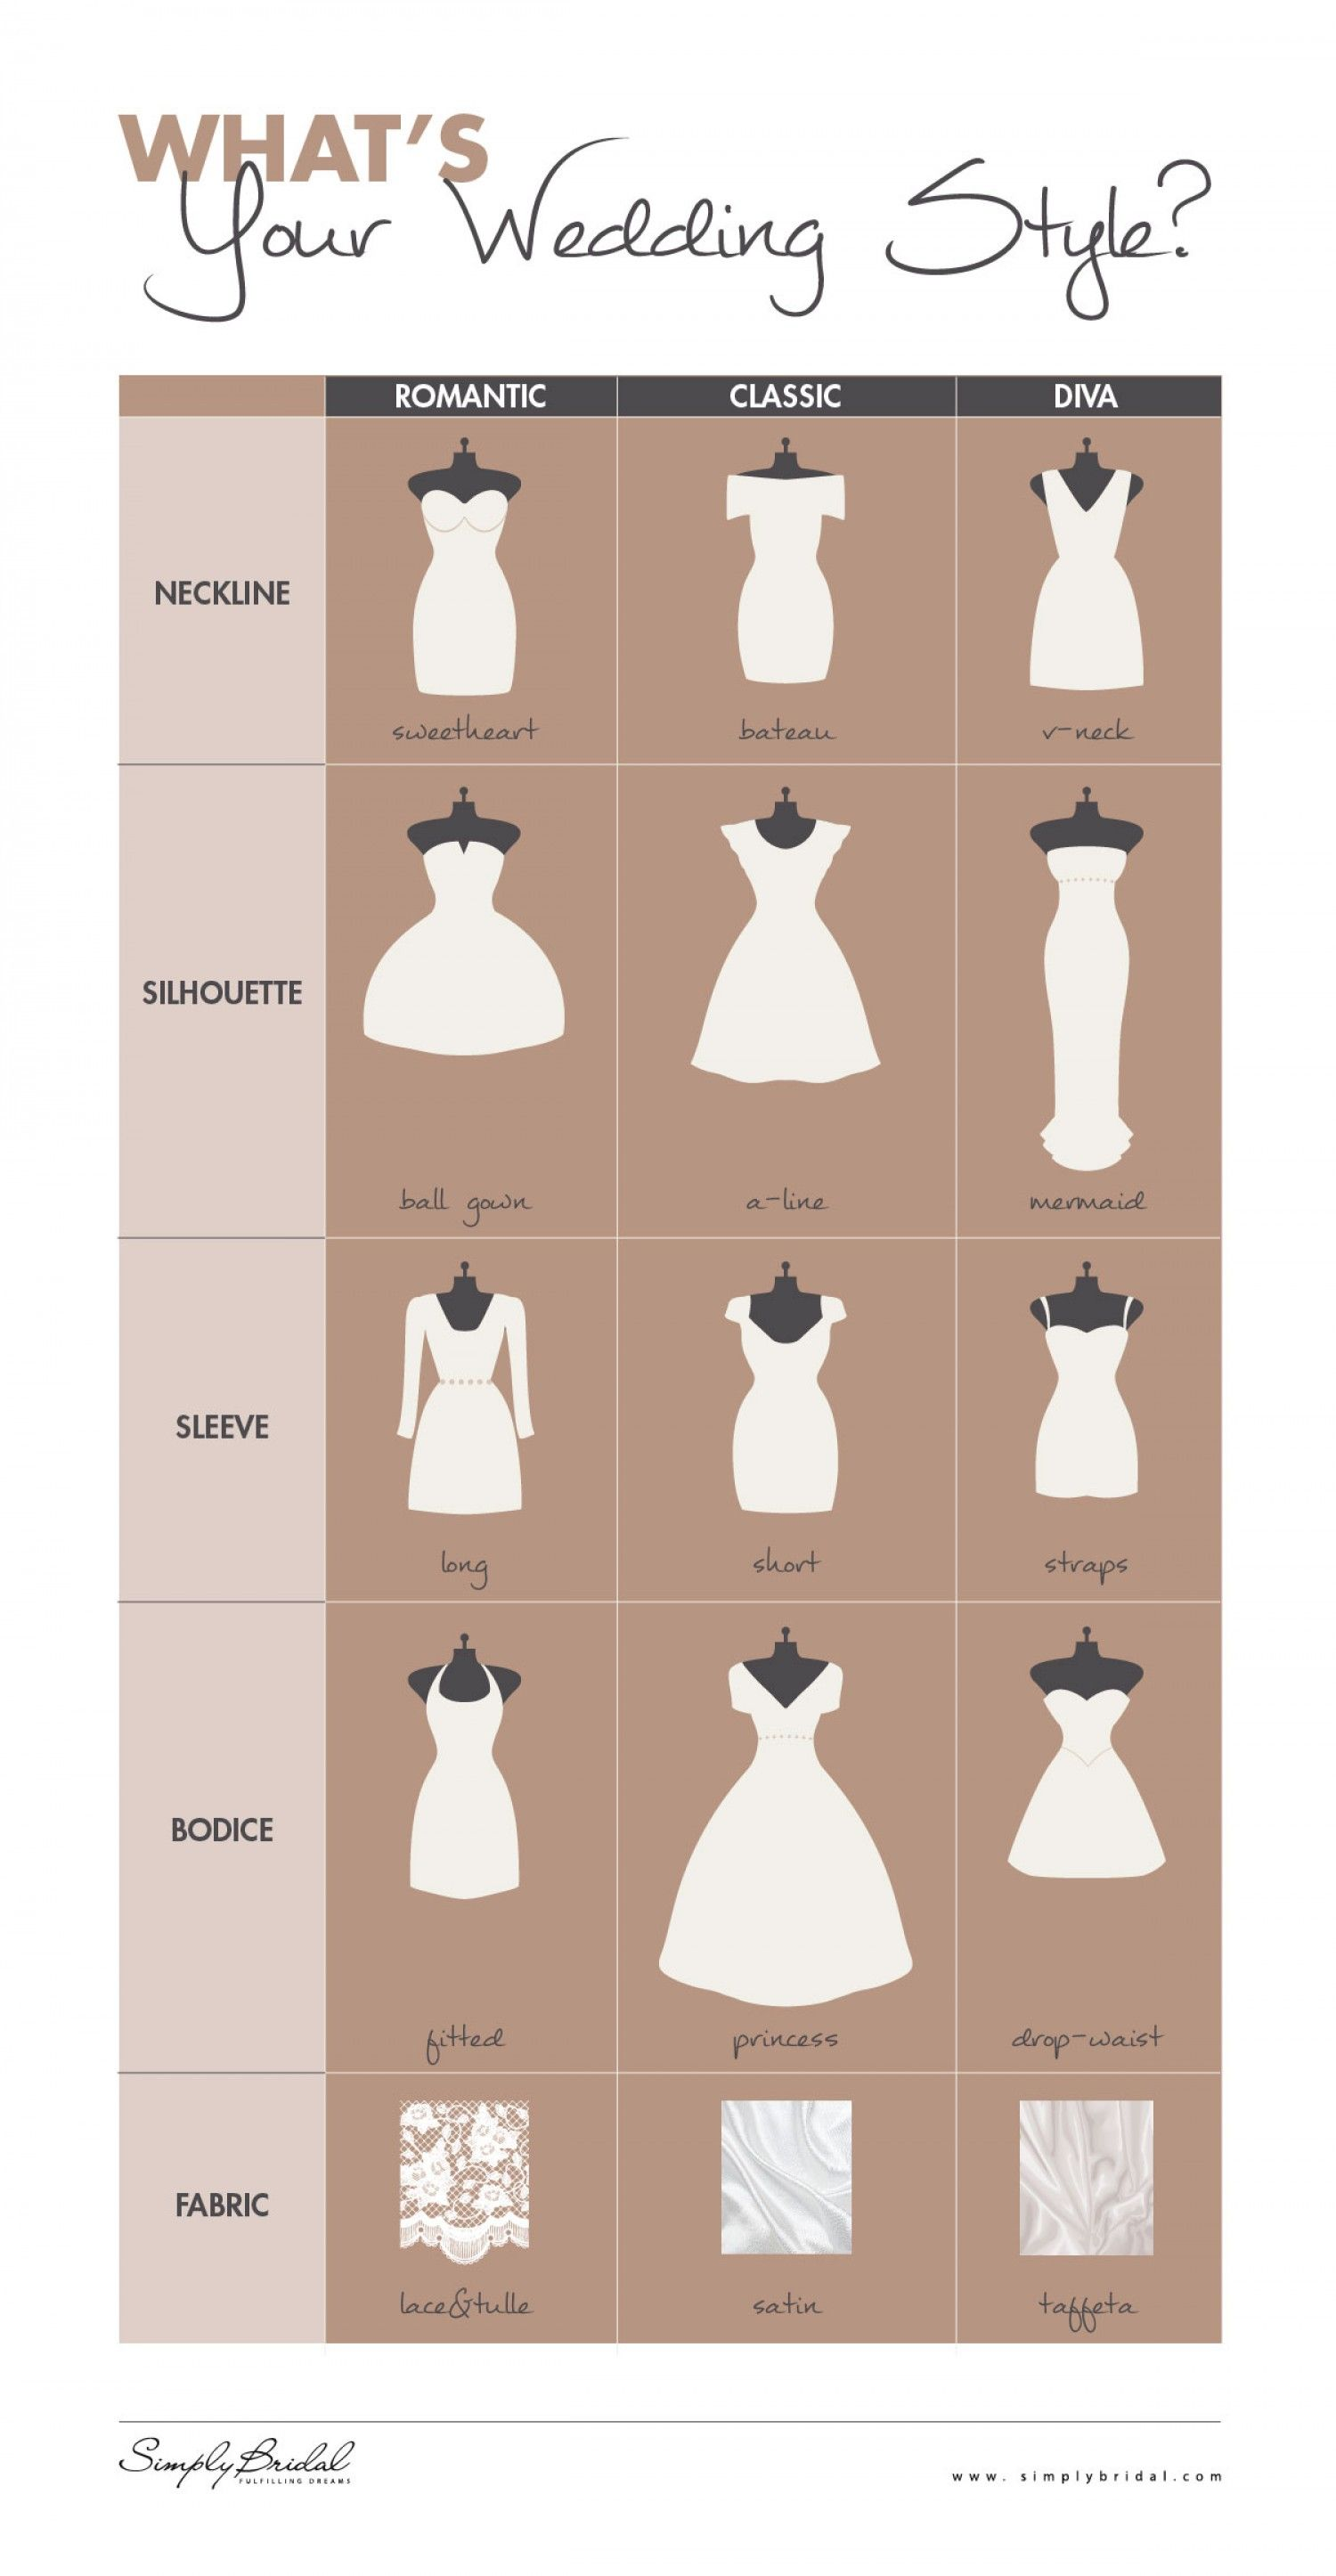 What's Your Wedding Style